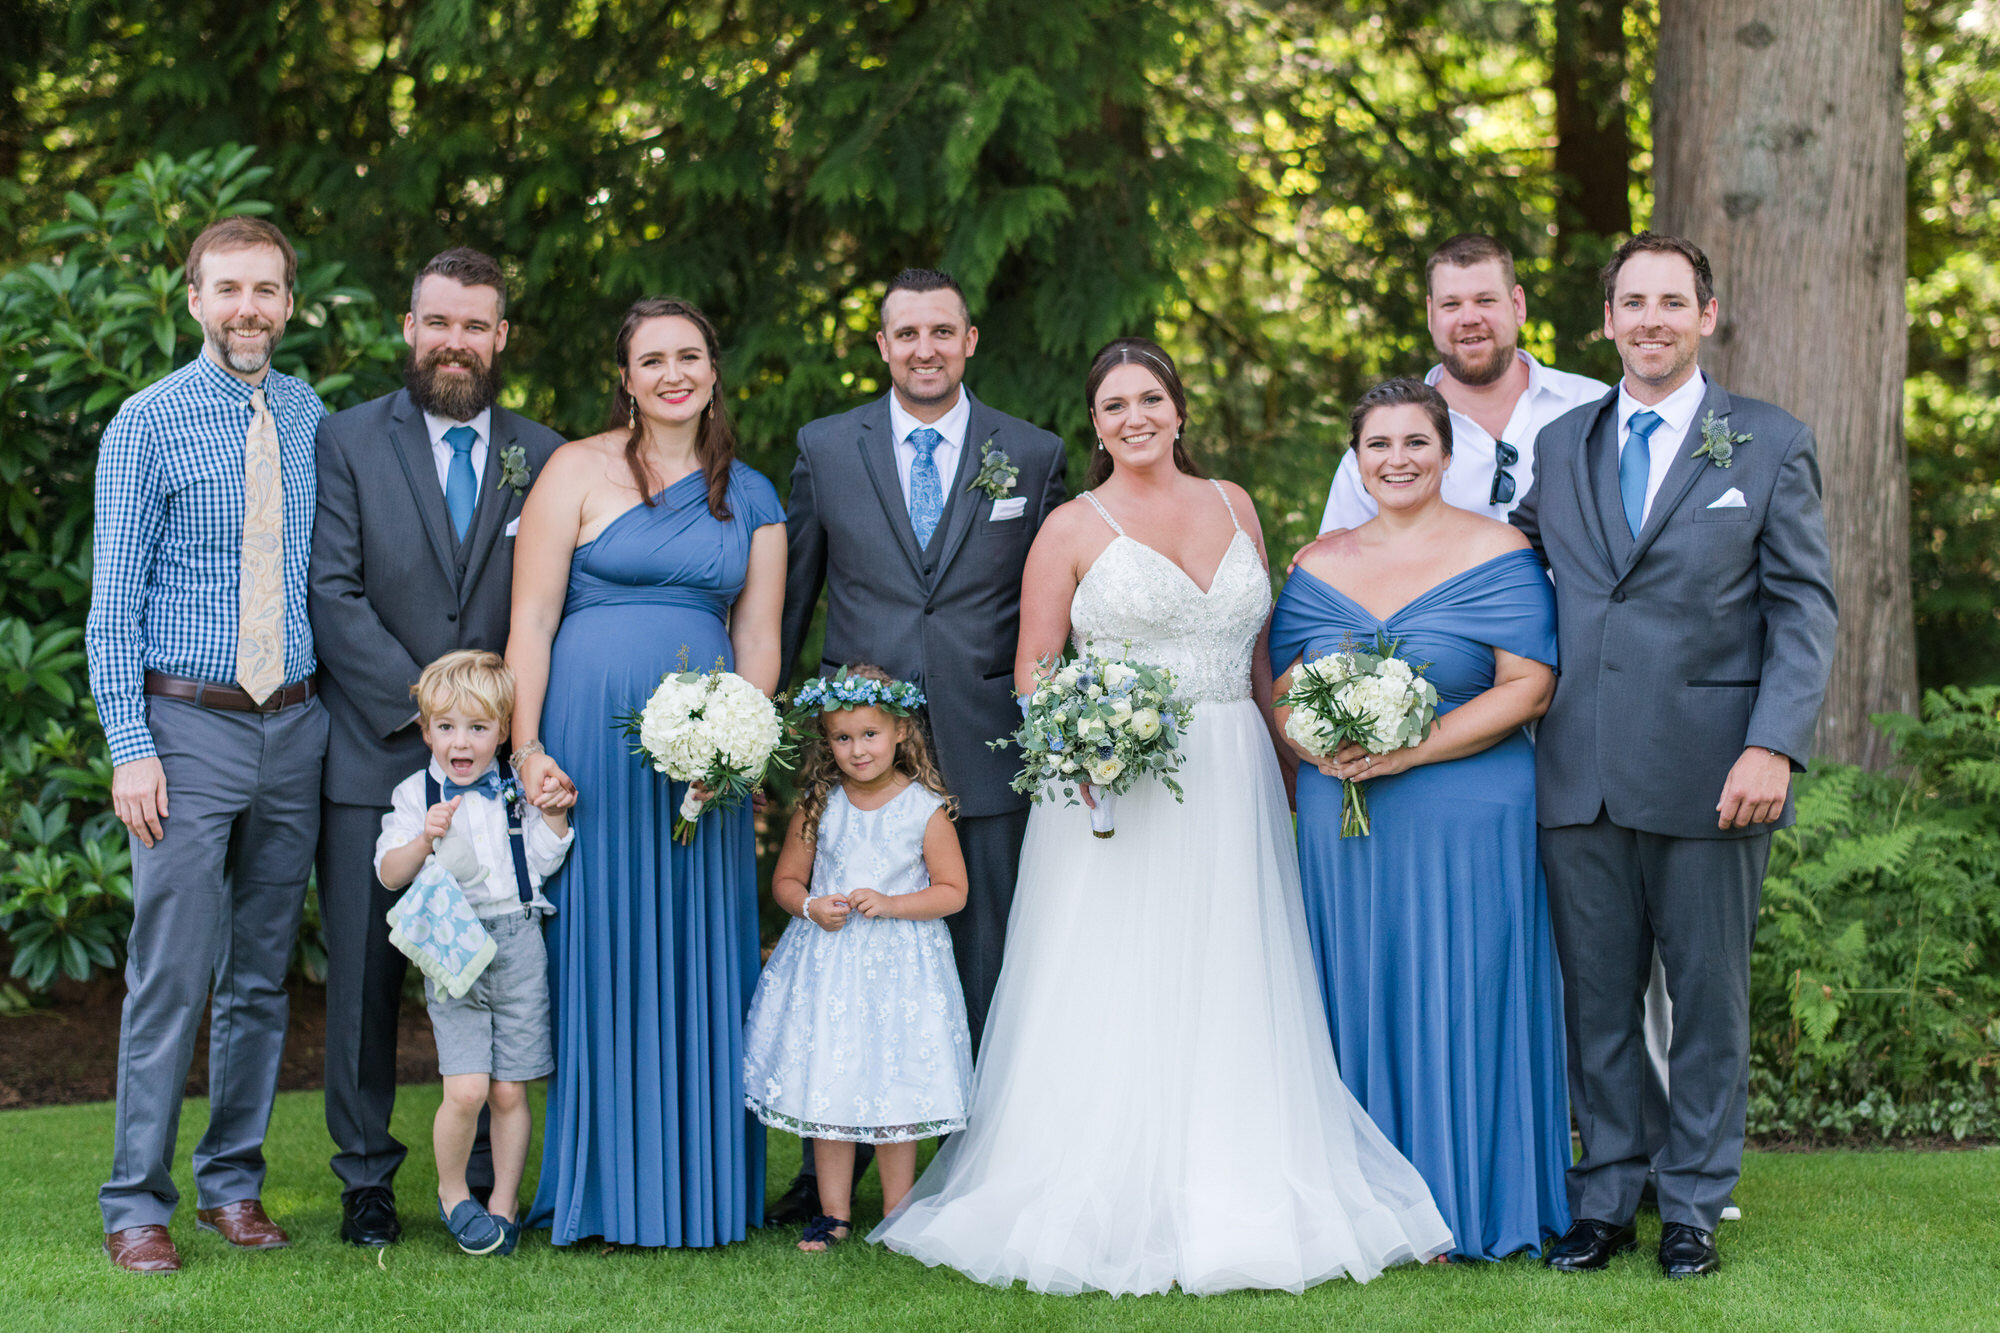 A Wedding Family photo checklist For Your Photographer parents and siblings with bride and groom